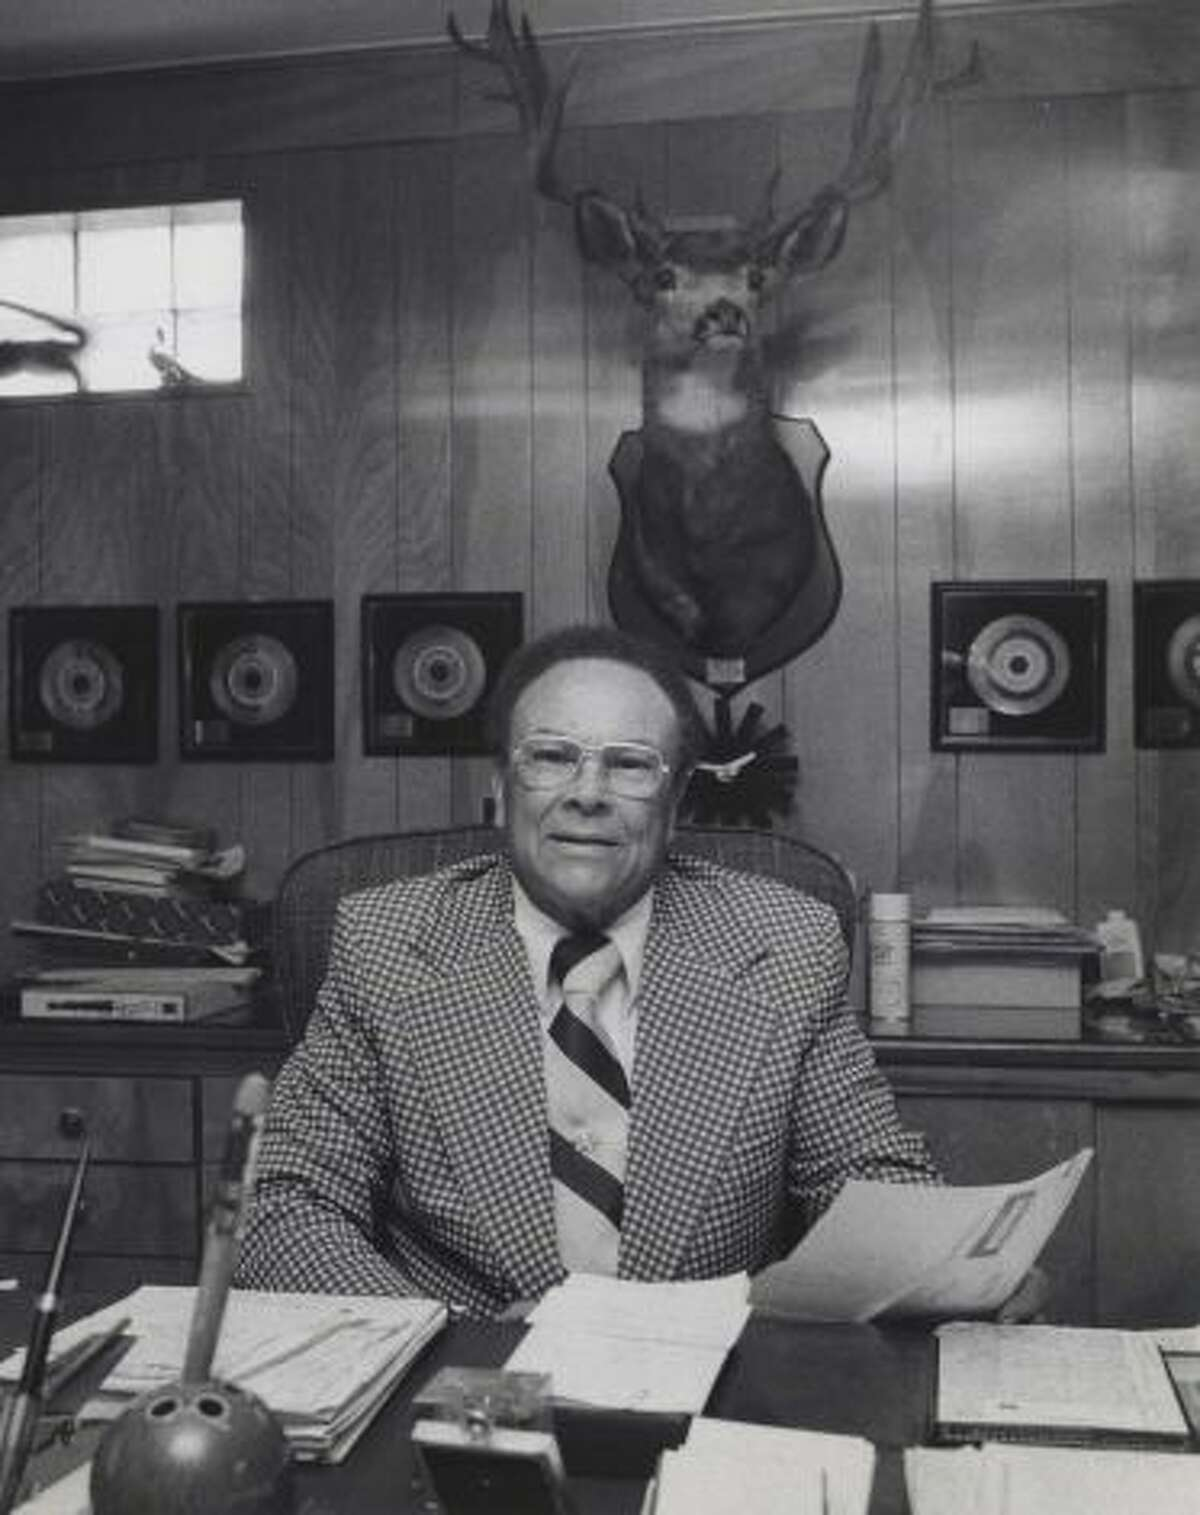 In February 1946, Don Robey opened the Bronze Peacock, designed to be the finest upscale club in the Fifth Ward.